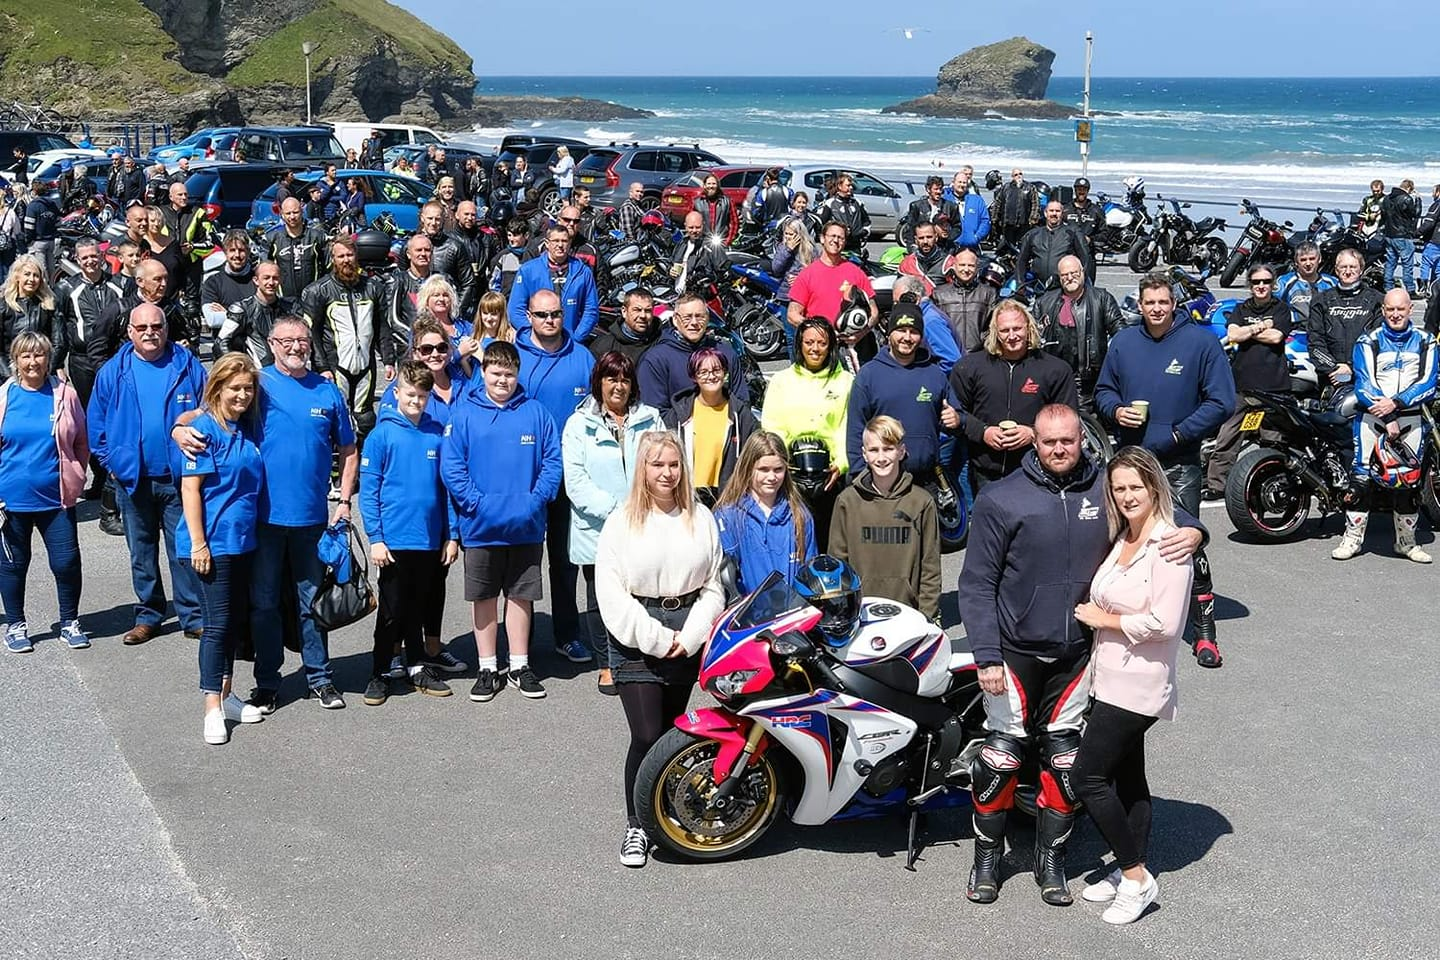 Terminal Cancer Patient Steve Inspires 100s of Fellow Bikers to Support NHS Fundraiser